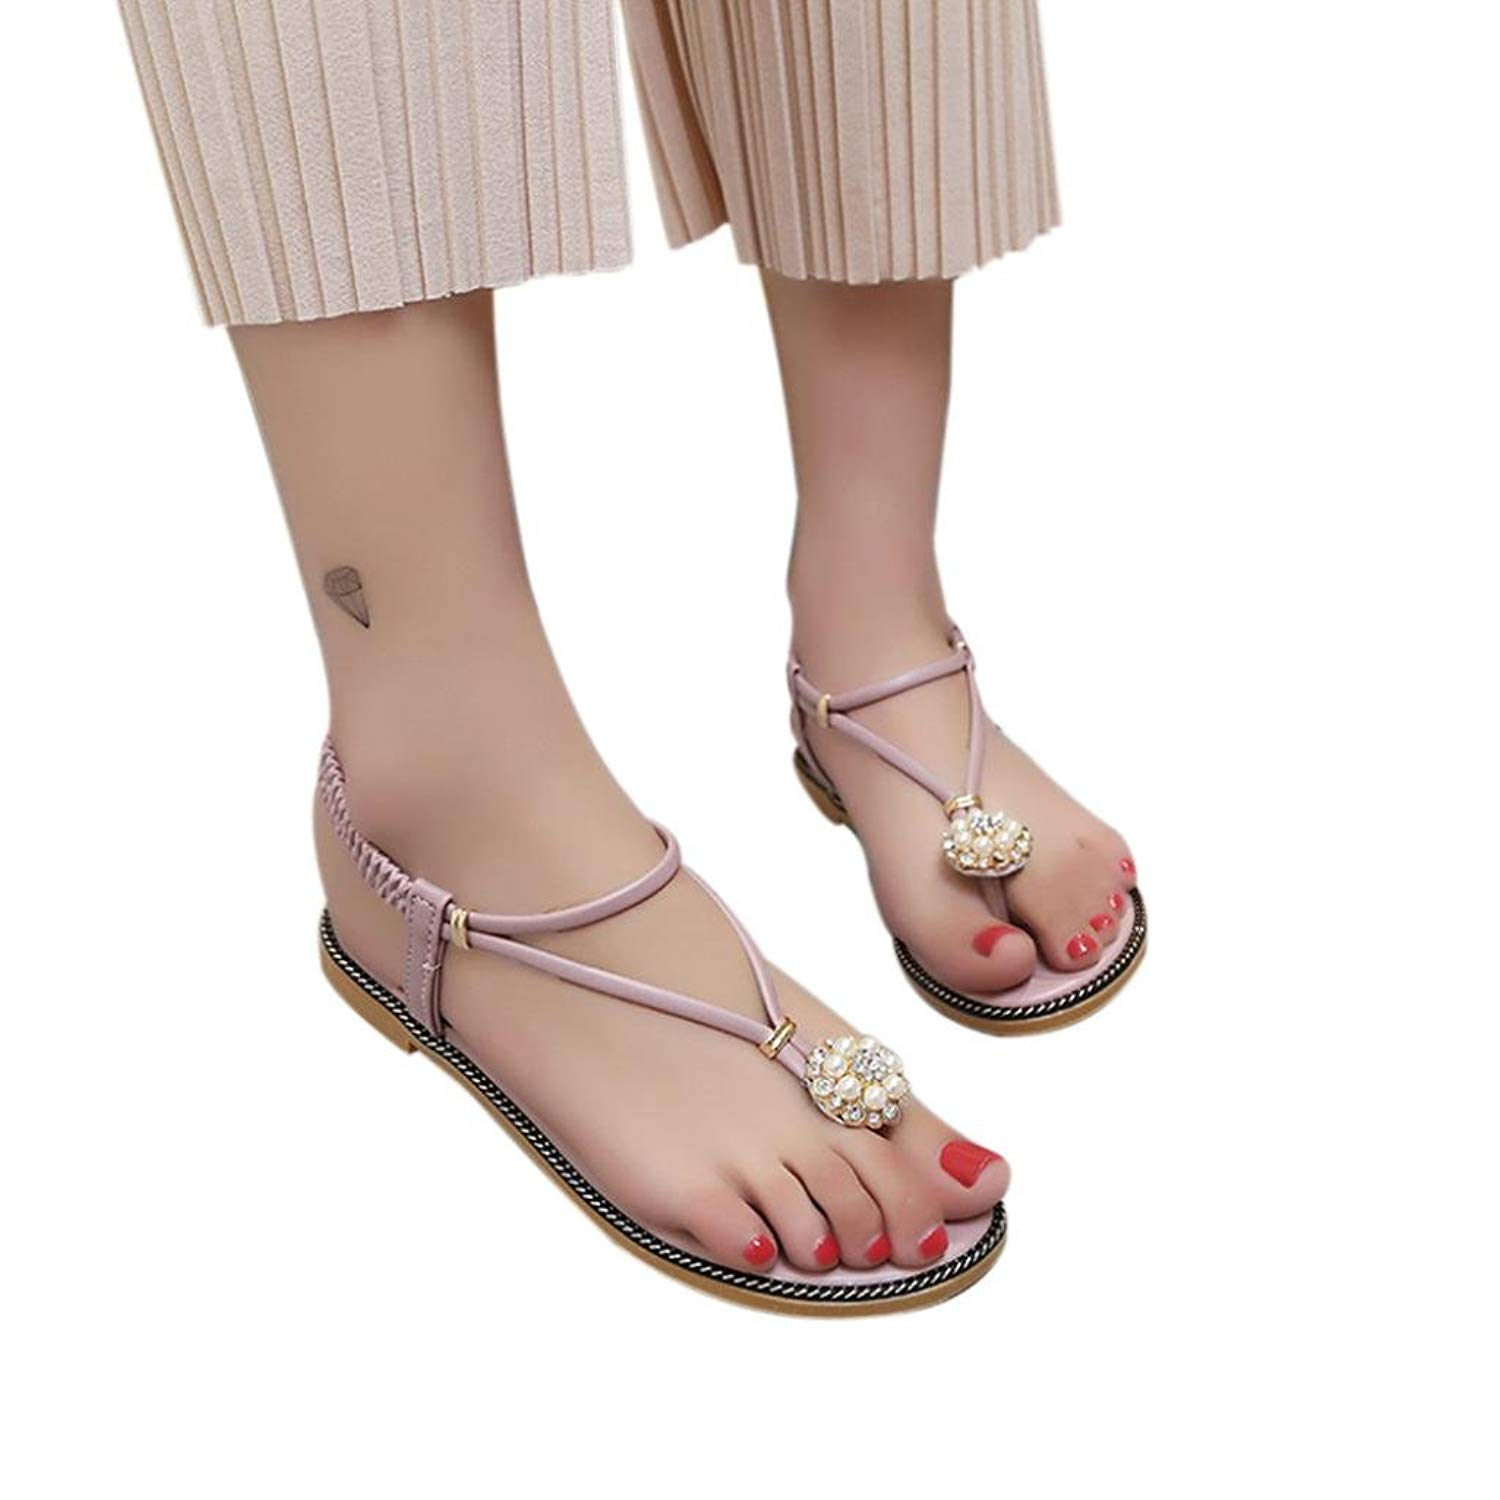 438ae3c47 Get Quotations · RAISINGTOP Women Bohemian Pearl Sandals Summer Fashion  Diamond Sandals Flat Sandals Juniors Shoes Dressy Comfortable